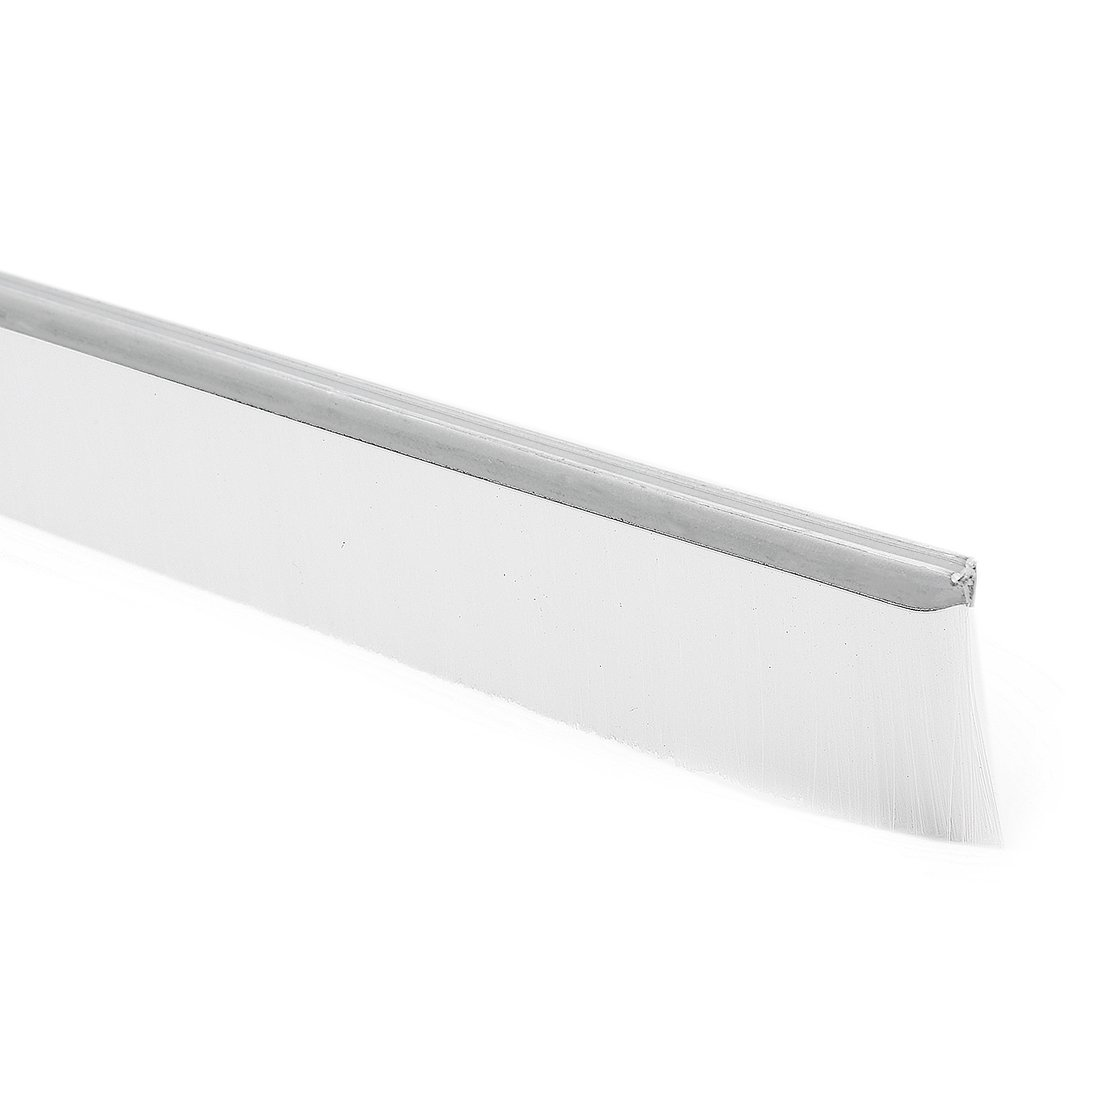 uxcell 39-inch x 1-inch Door Bottom Sweep Nylon Brush Insert Seal White by uxcell